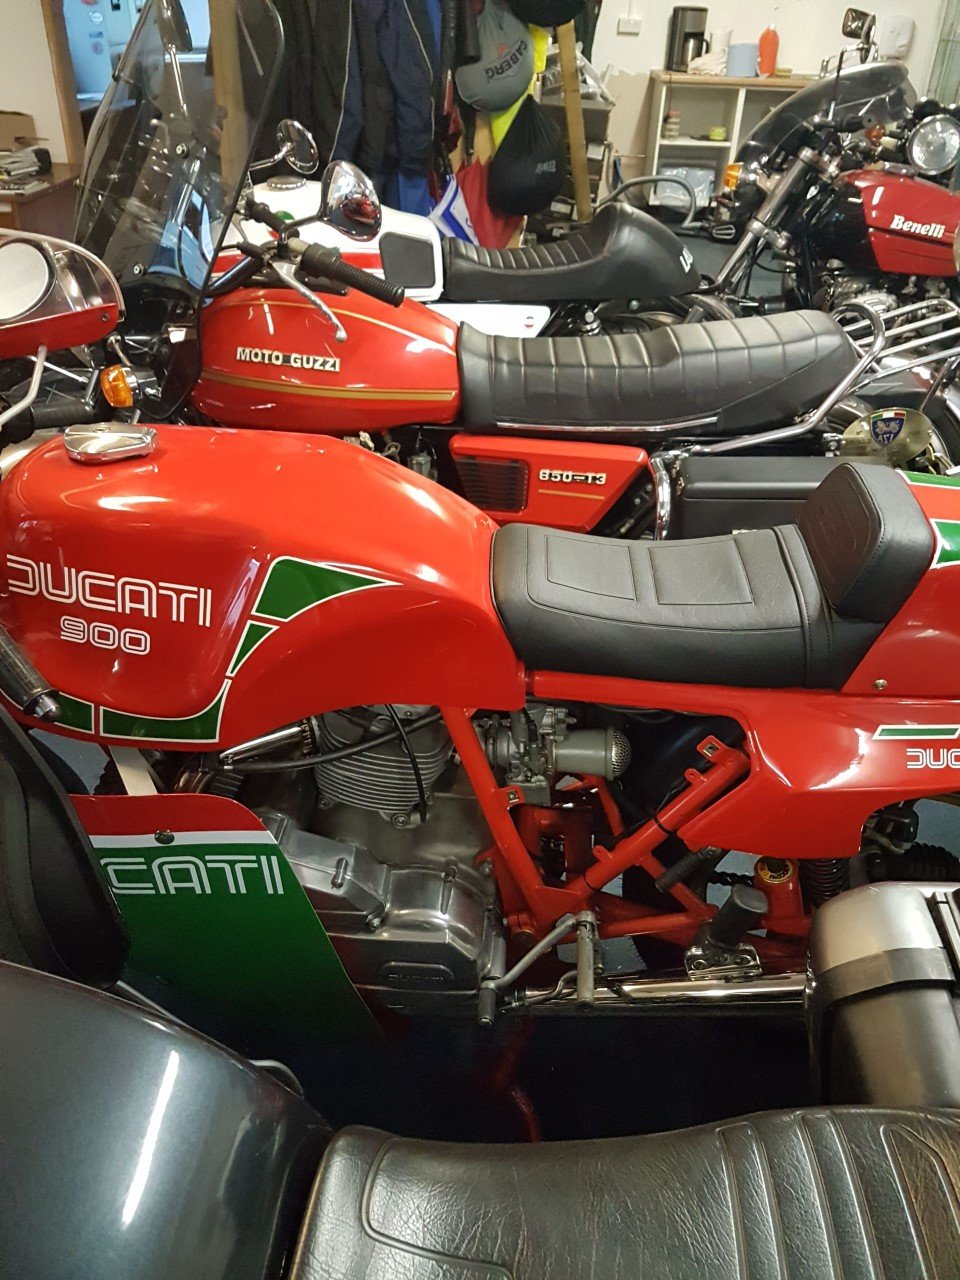 1983 Ducati 900 MHR For Sale (picture 4 of 6)